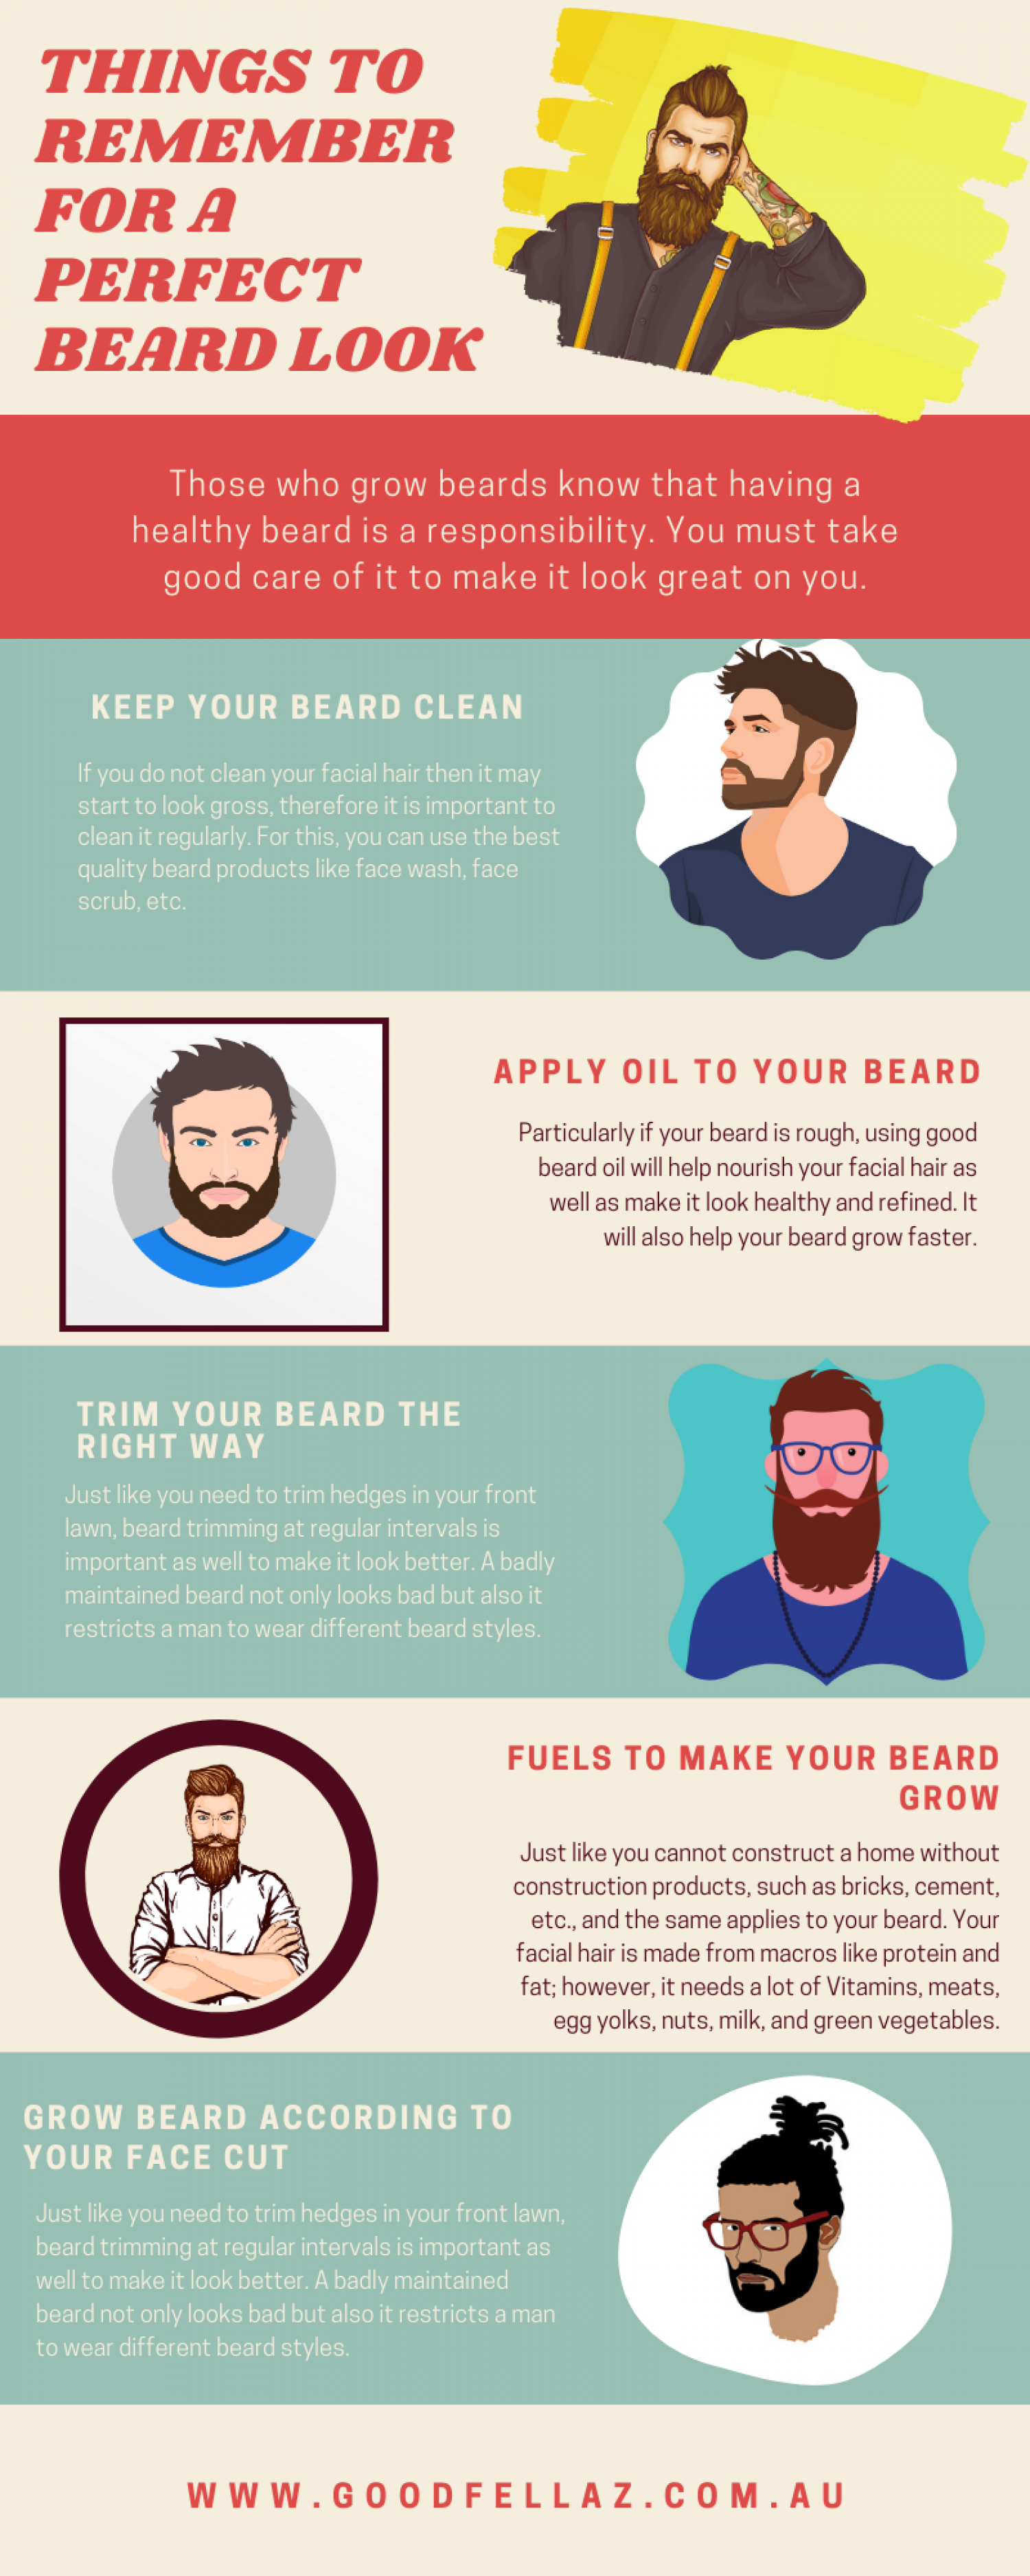 Things to Remember for A Perfect Beard Look Infographic